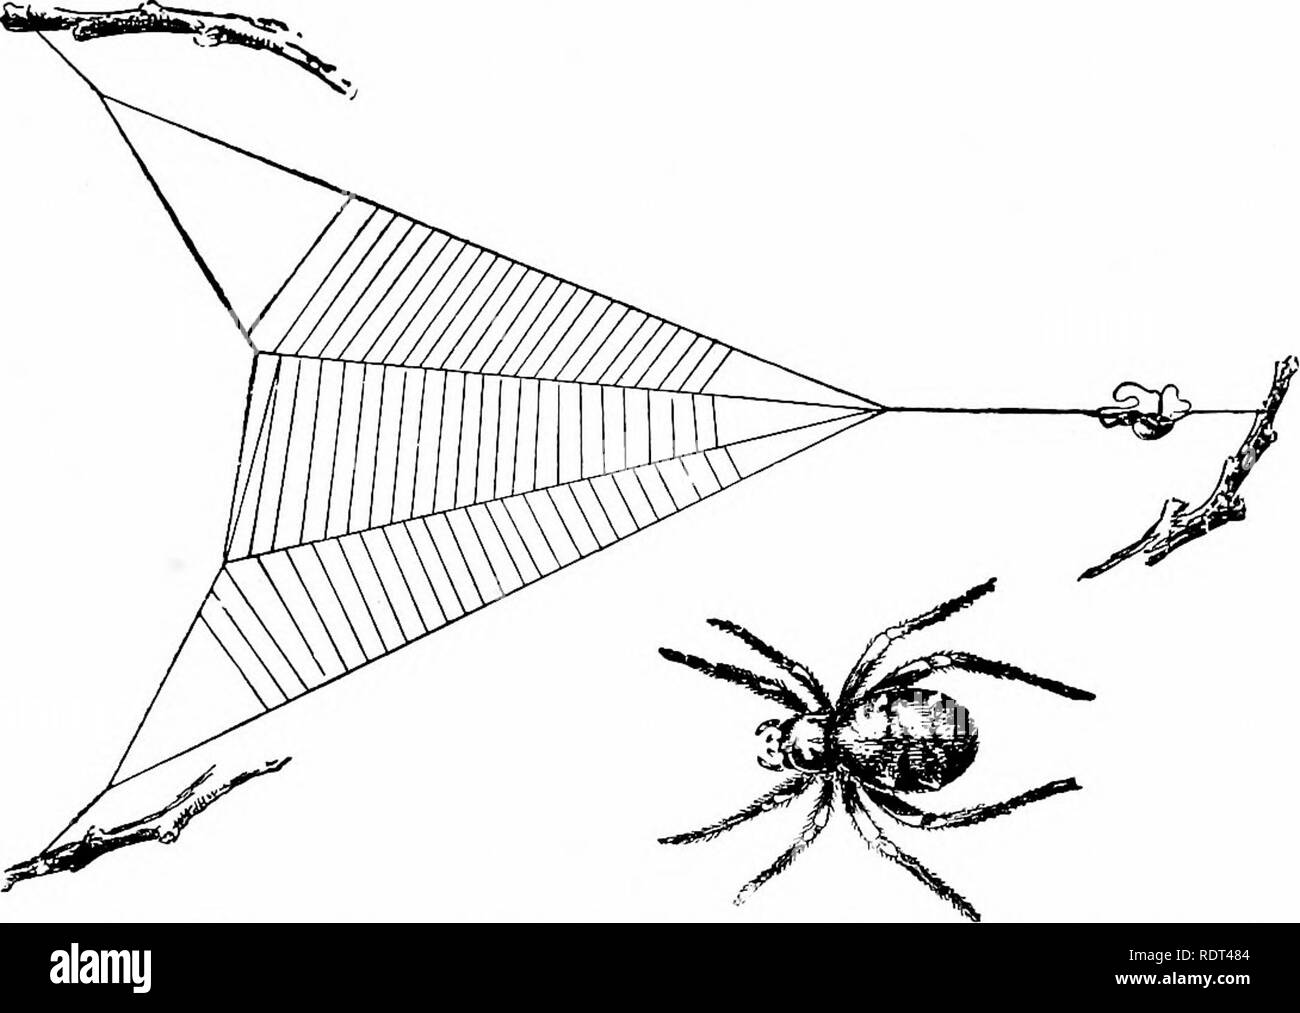 . First lessons in zoology. Zoology. SPIDERS AND THEIR fVEB-MAKING 205 posed of a spiral line but of a closed oval or circular shield. The very small triangle spider spins a triangular web (fig. 166), from which a main stay-line runs, upon which the creature rests with a loop of the stay-line held between the fore and hind legs. When an insect alights upon the snare the spider looses the hold of the hind legs on the stay-line and the web springs suddenly, further en-. FlG. 166.—The triangle spider, Hyptiotes sp. (California), with its web; the spider rests on tlie taut guy-line, with a loop of - Stock Image